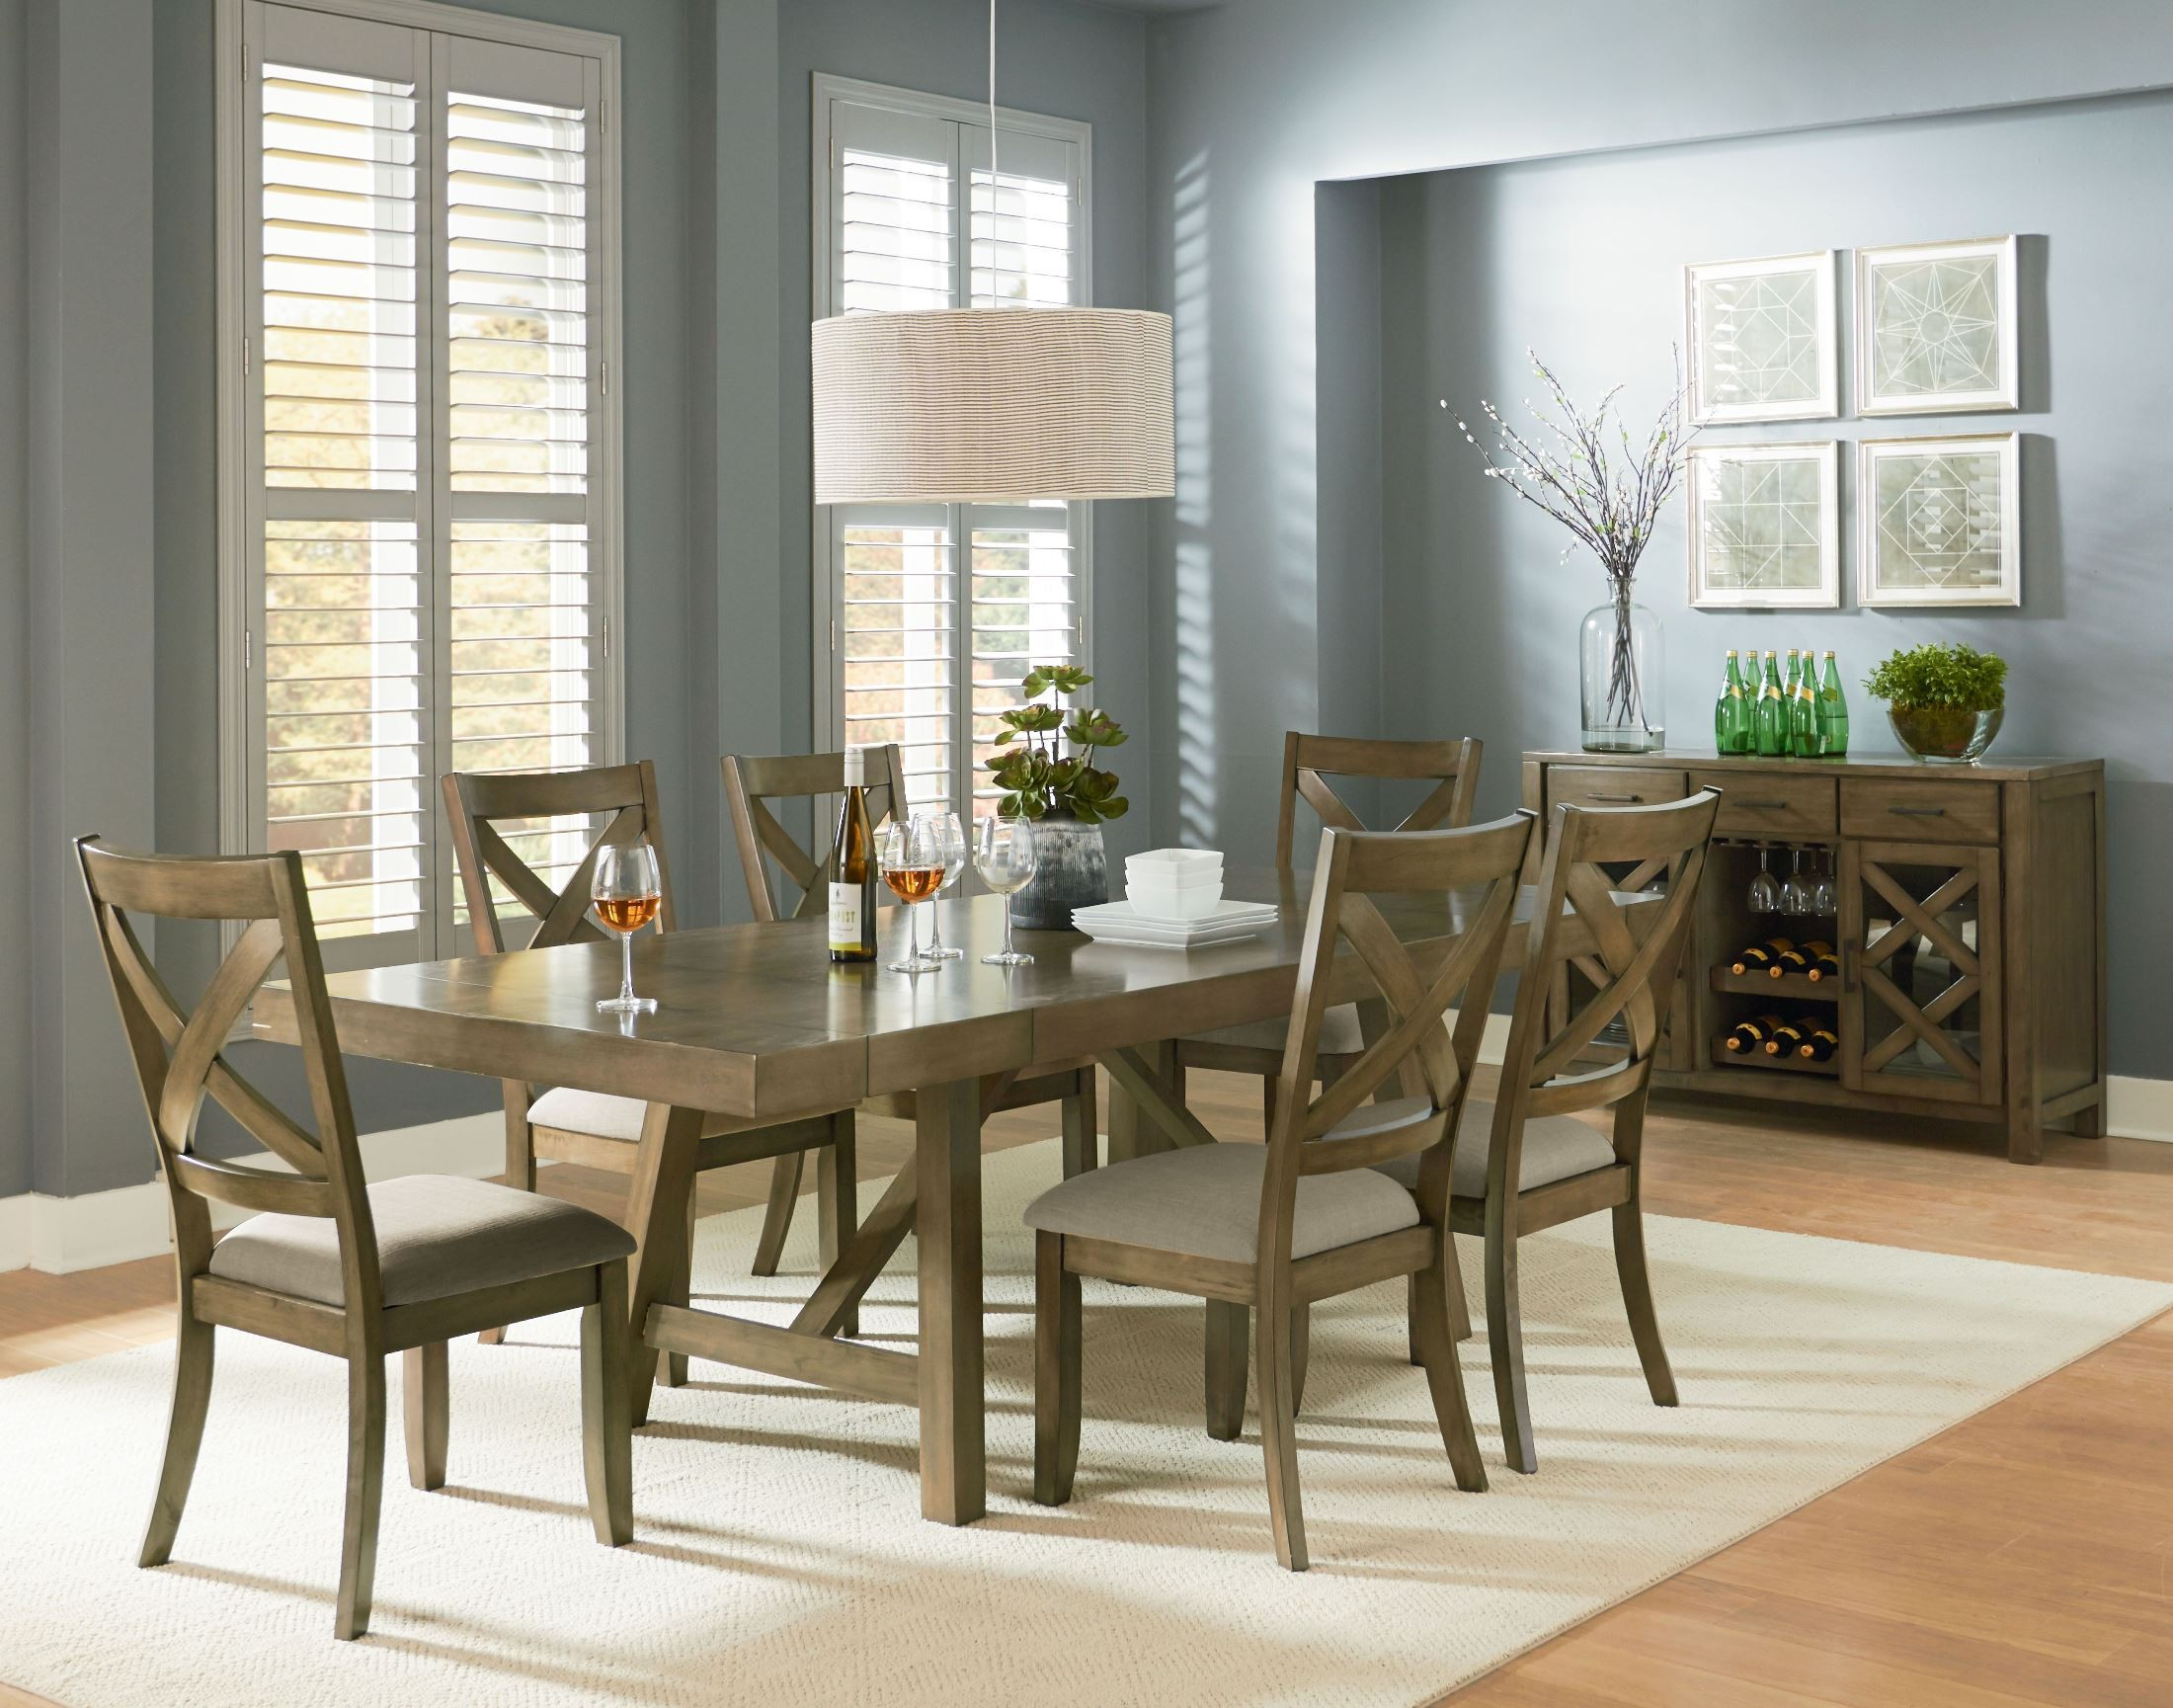 Omaha Weathered Burnished Gray Extendable Trestle Dining Room Set 16681 Standard Furniture